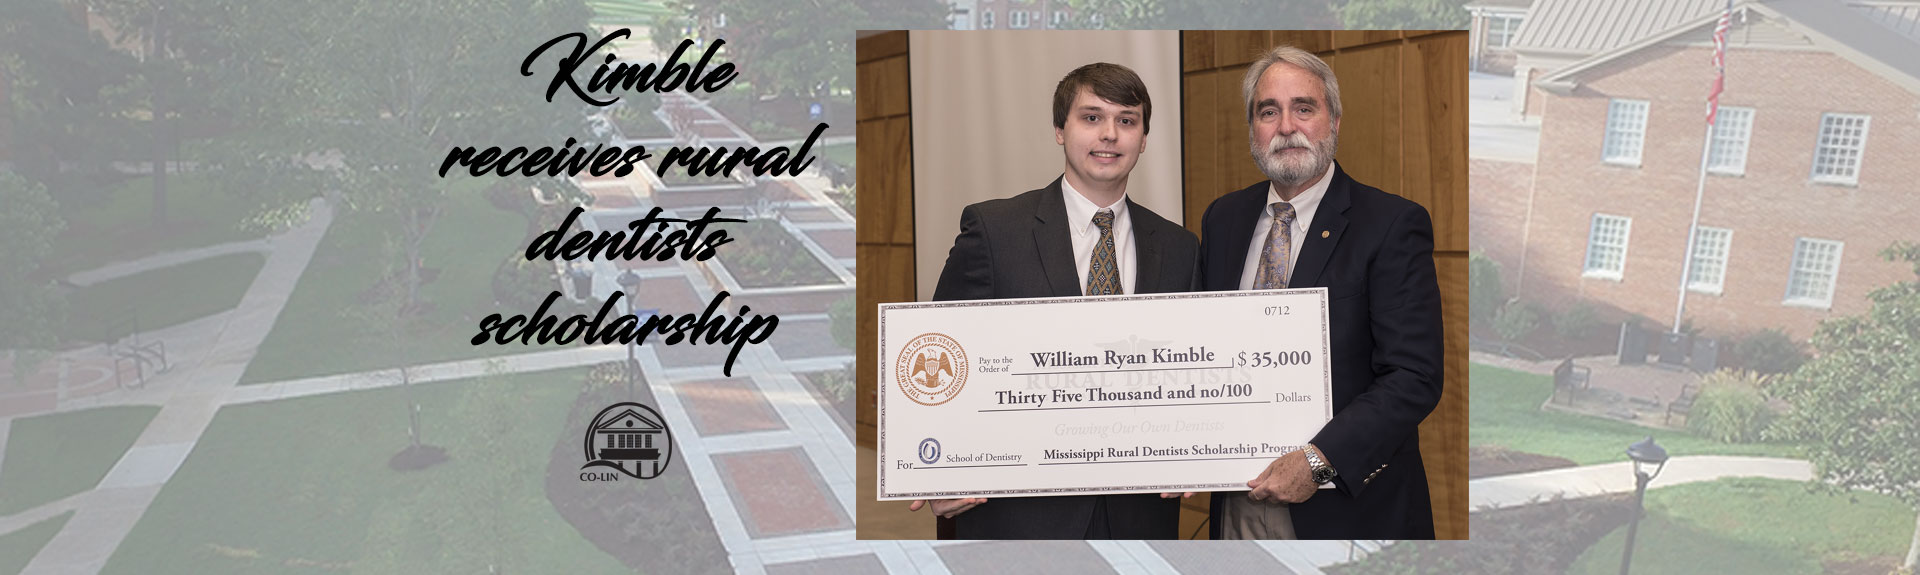 Kimble receives rural dentists scholarship